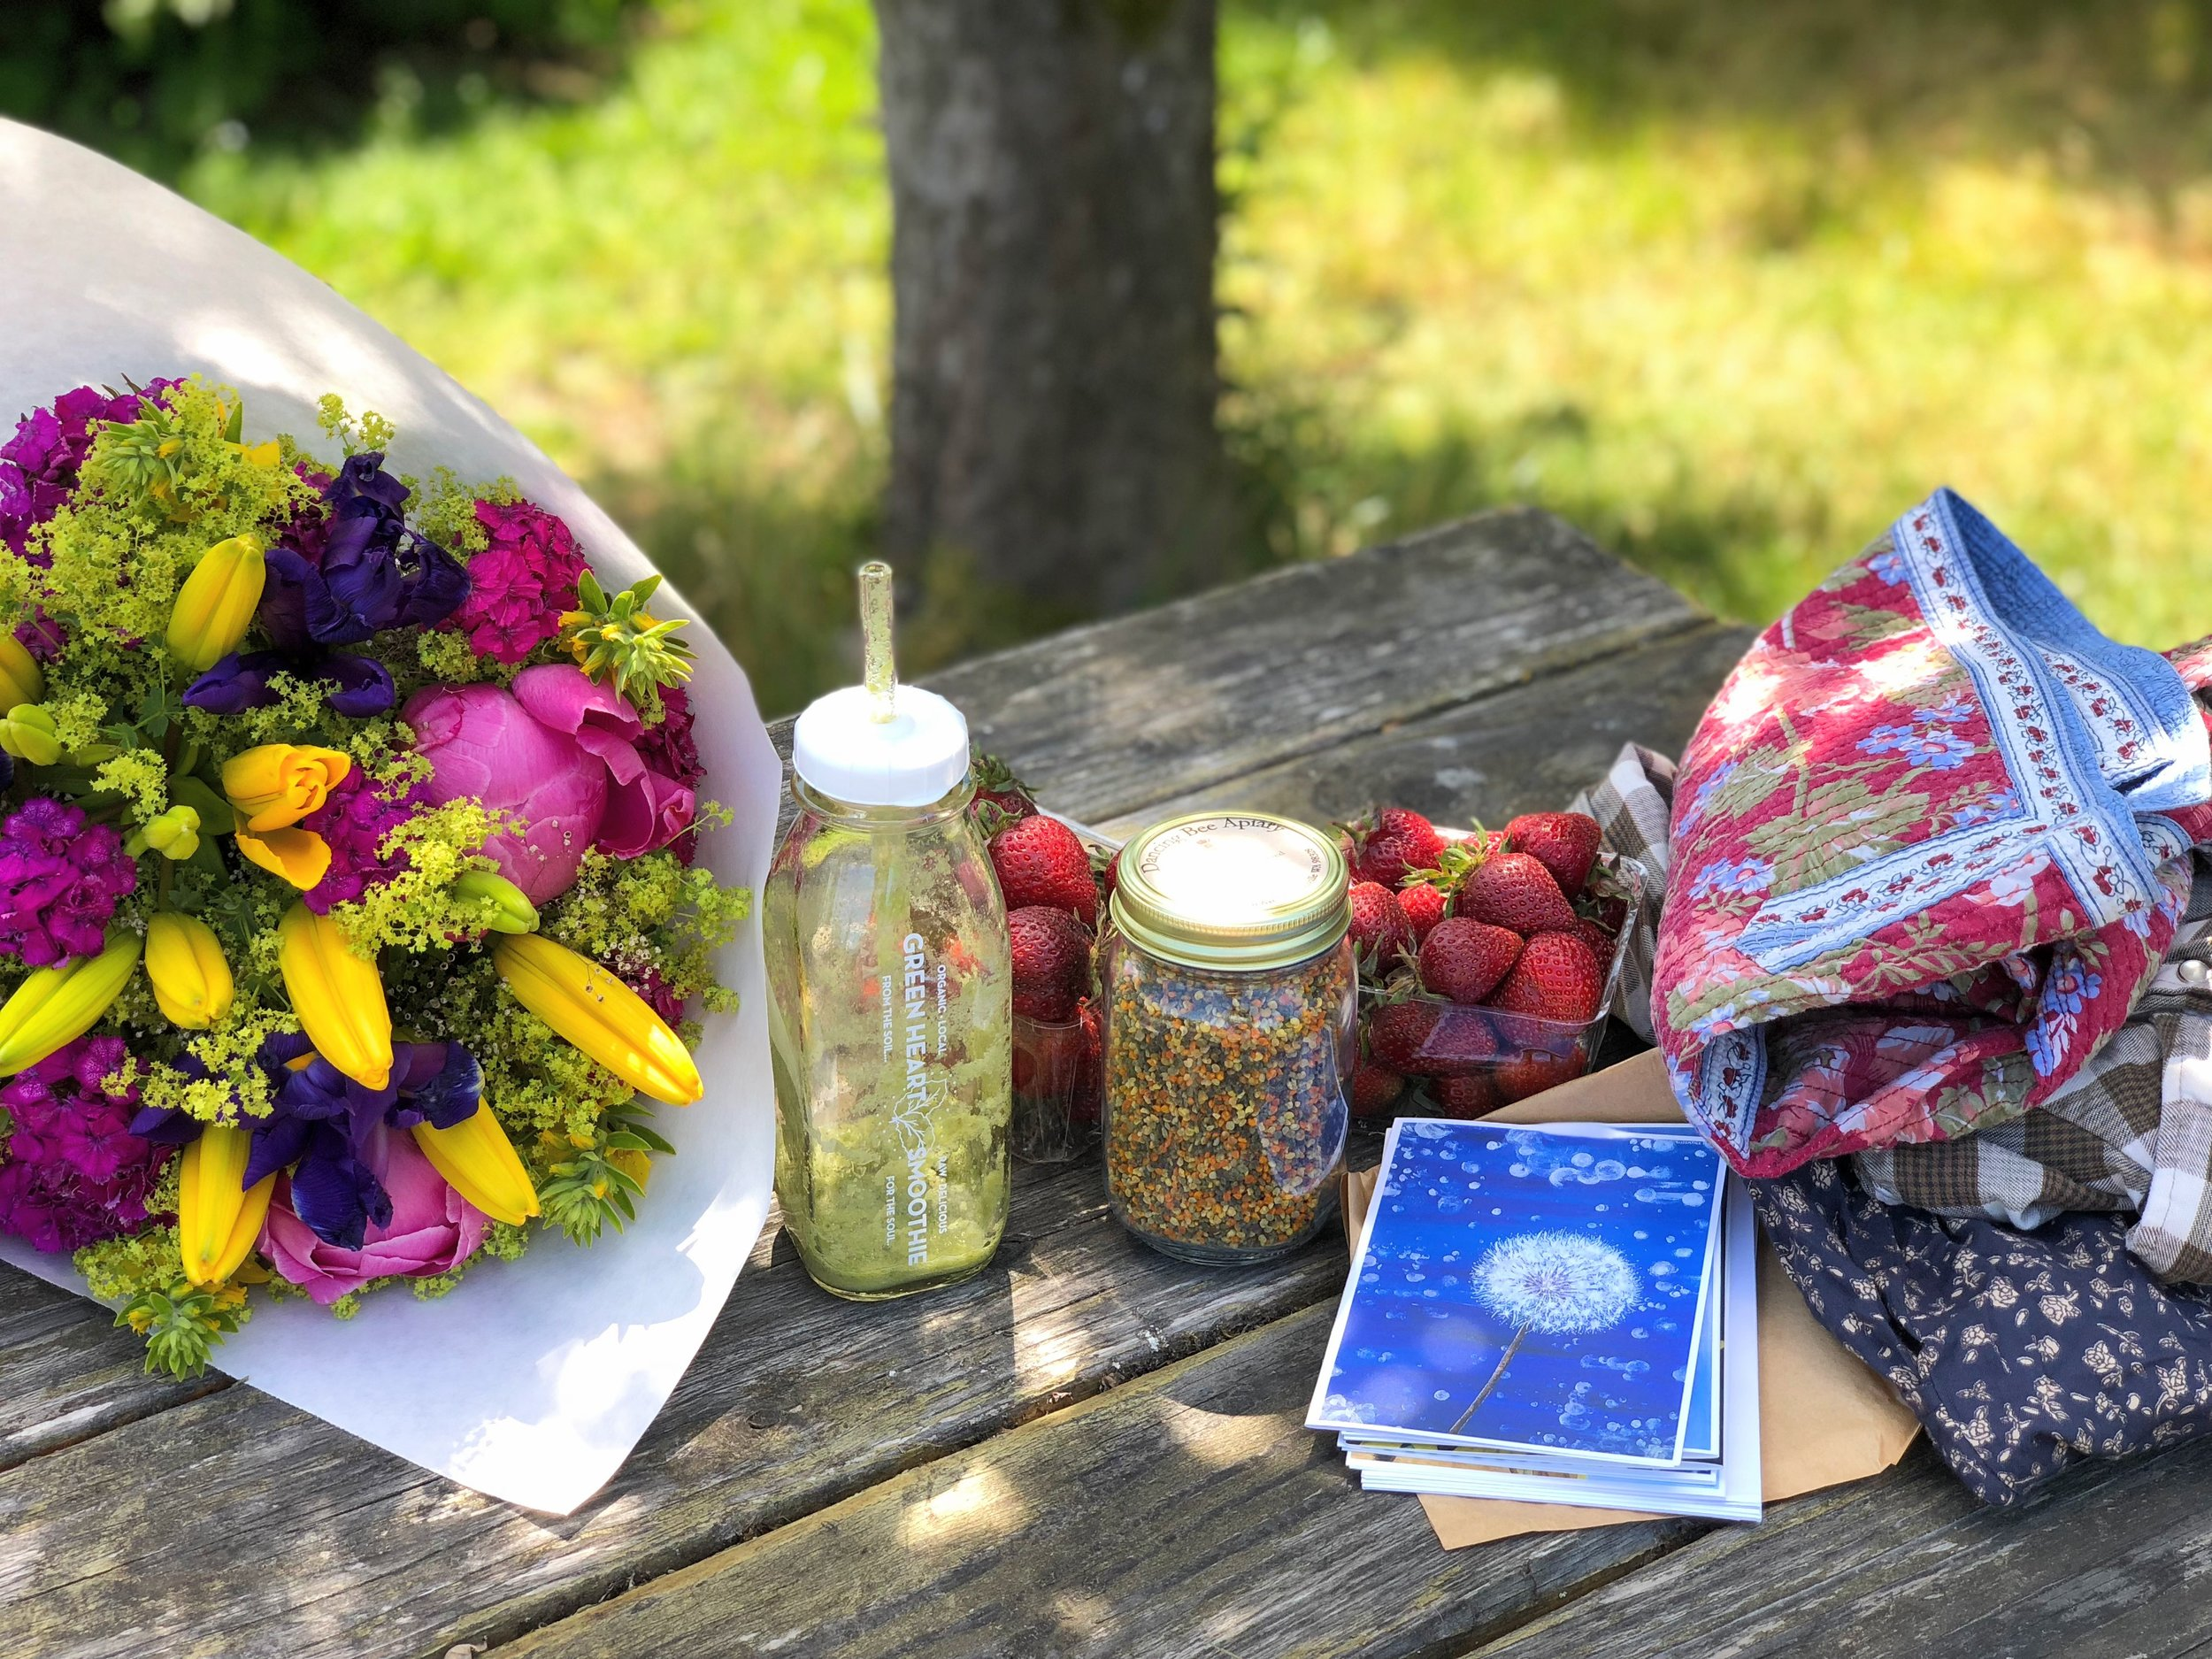 Treasures from the Proctor Farmers' Market and La Paloma Proctor.  Greenheart Smoothie ,  Spooner Farms  strawberries, cards by  Kelly Falk ,  Dancing Bee Apiary  pollen, and vintage/thrift apparel finds.